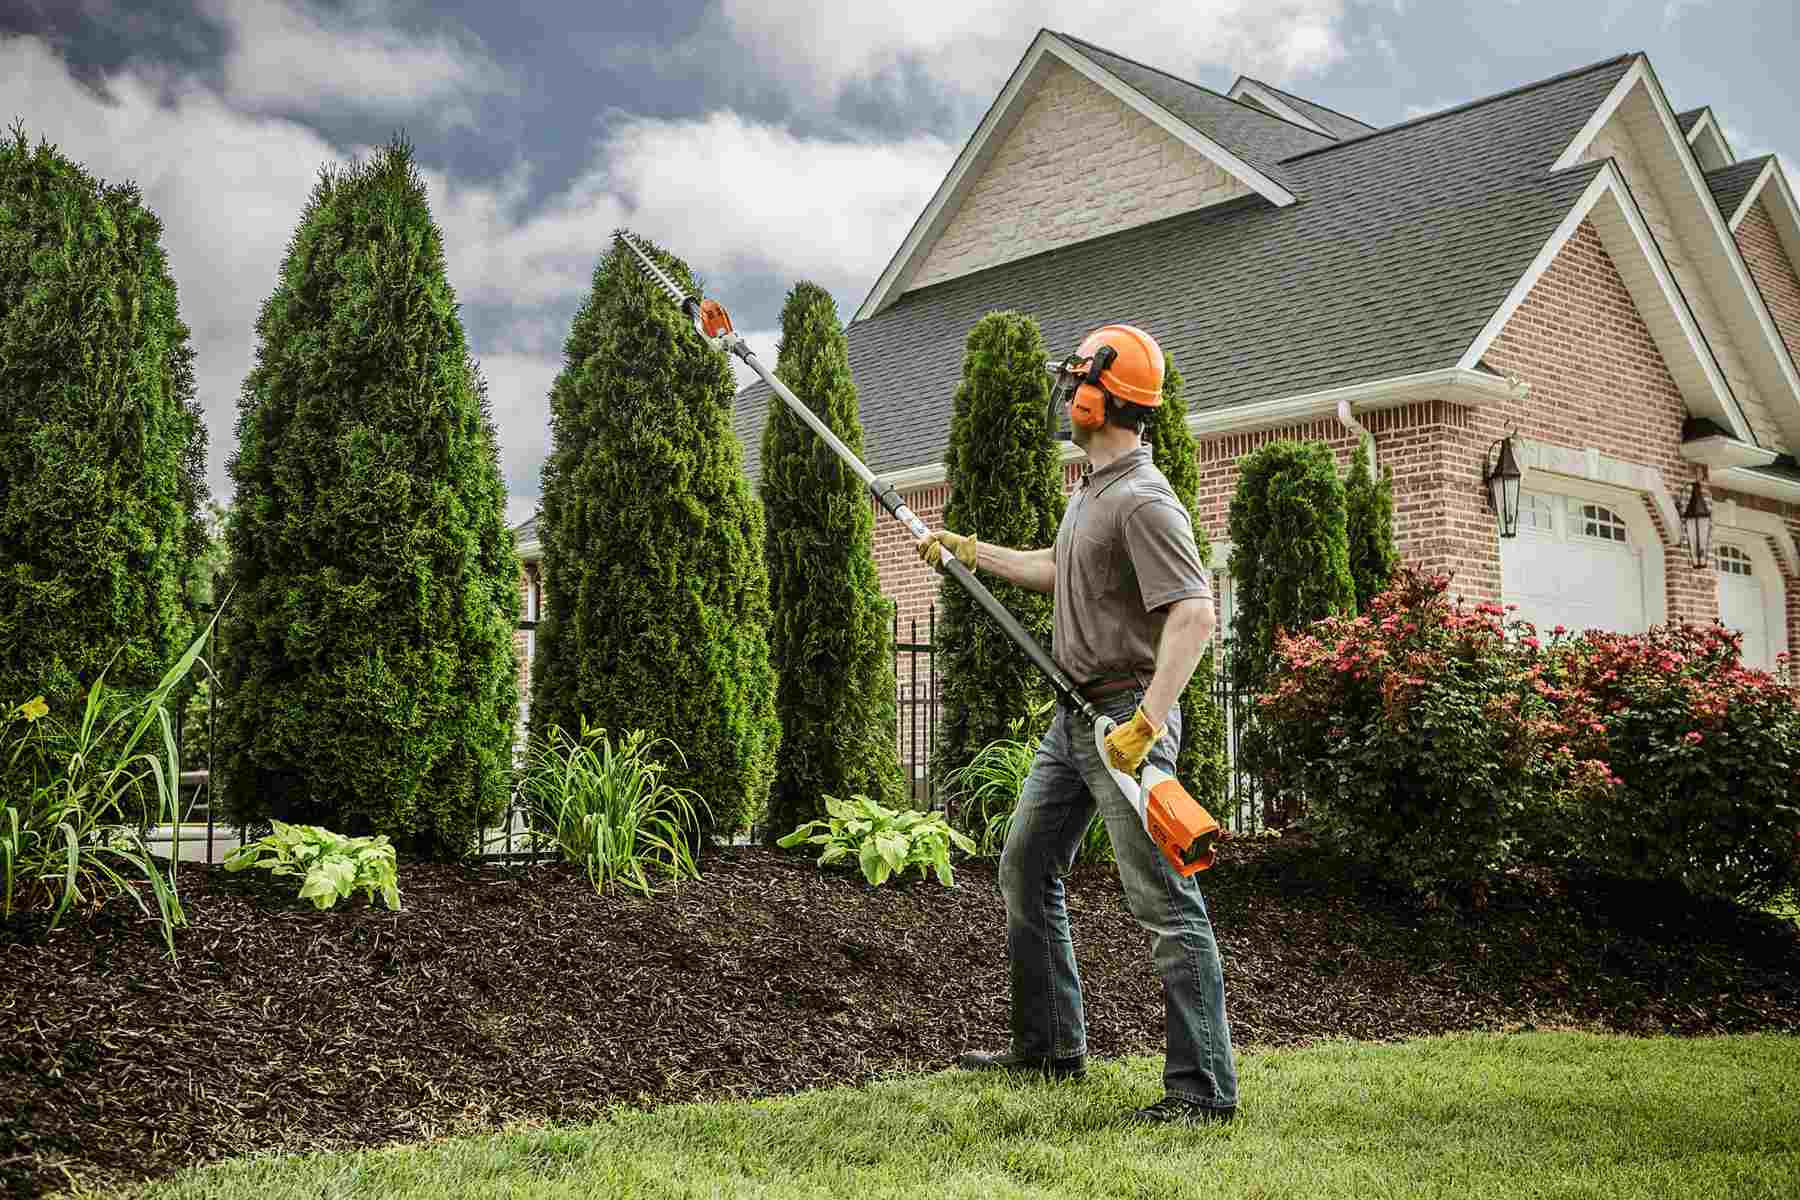 Paradise-Henderson's Complete Tree Services-We Offer Tree Trimming Services, Tree Removal, Tree Pruning, Tree Cutting, Residential and Commercial Tree Trimming Services, Storm Damage, Emergency Tree Removal, Land Clearing, Tree Companies, Tree Care Service, Stump Grinding, and we're the Best Tree Trimming Company Near You Guaranteed!